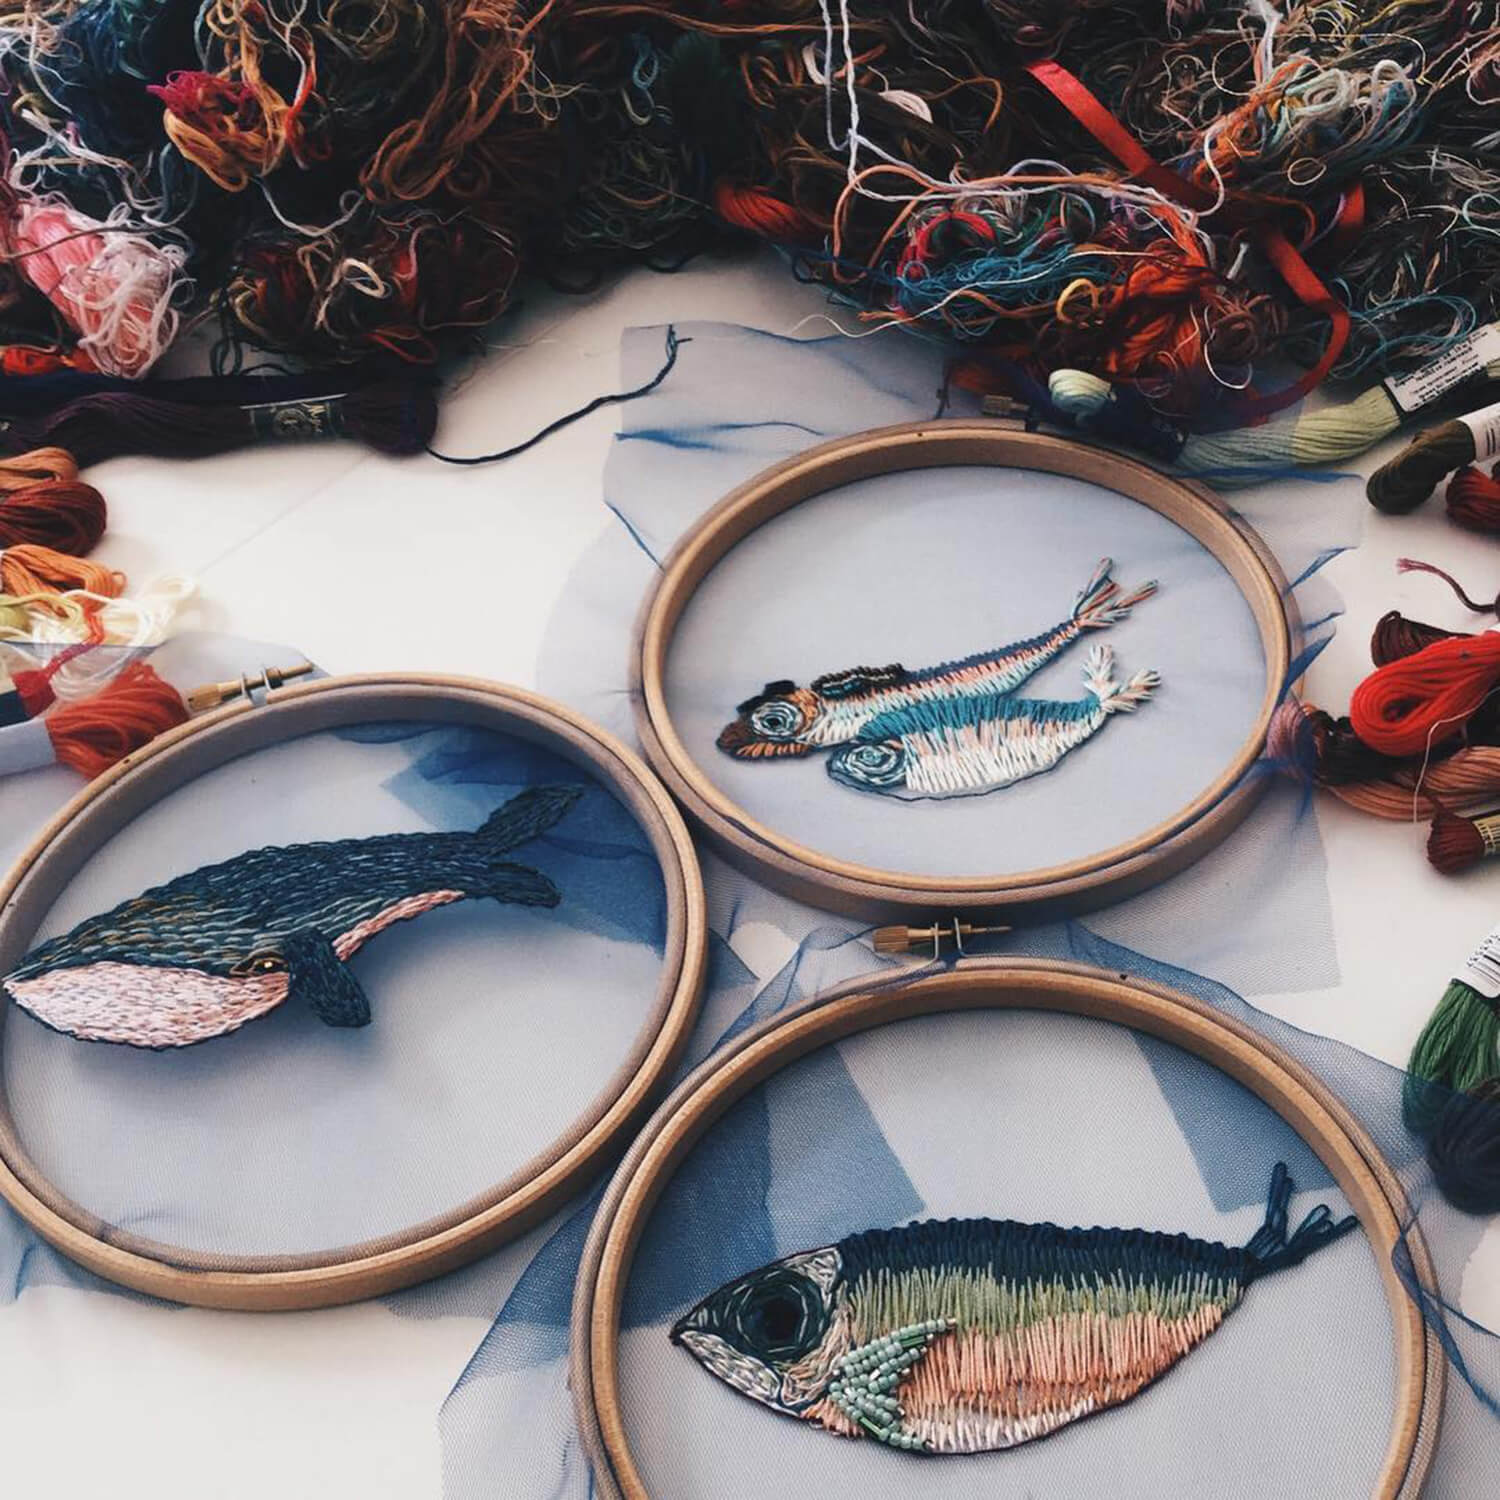 embroidery of sea creatures stitched within embroidery hoops